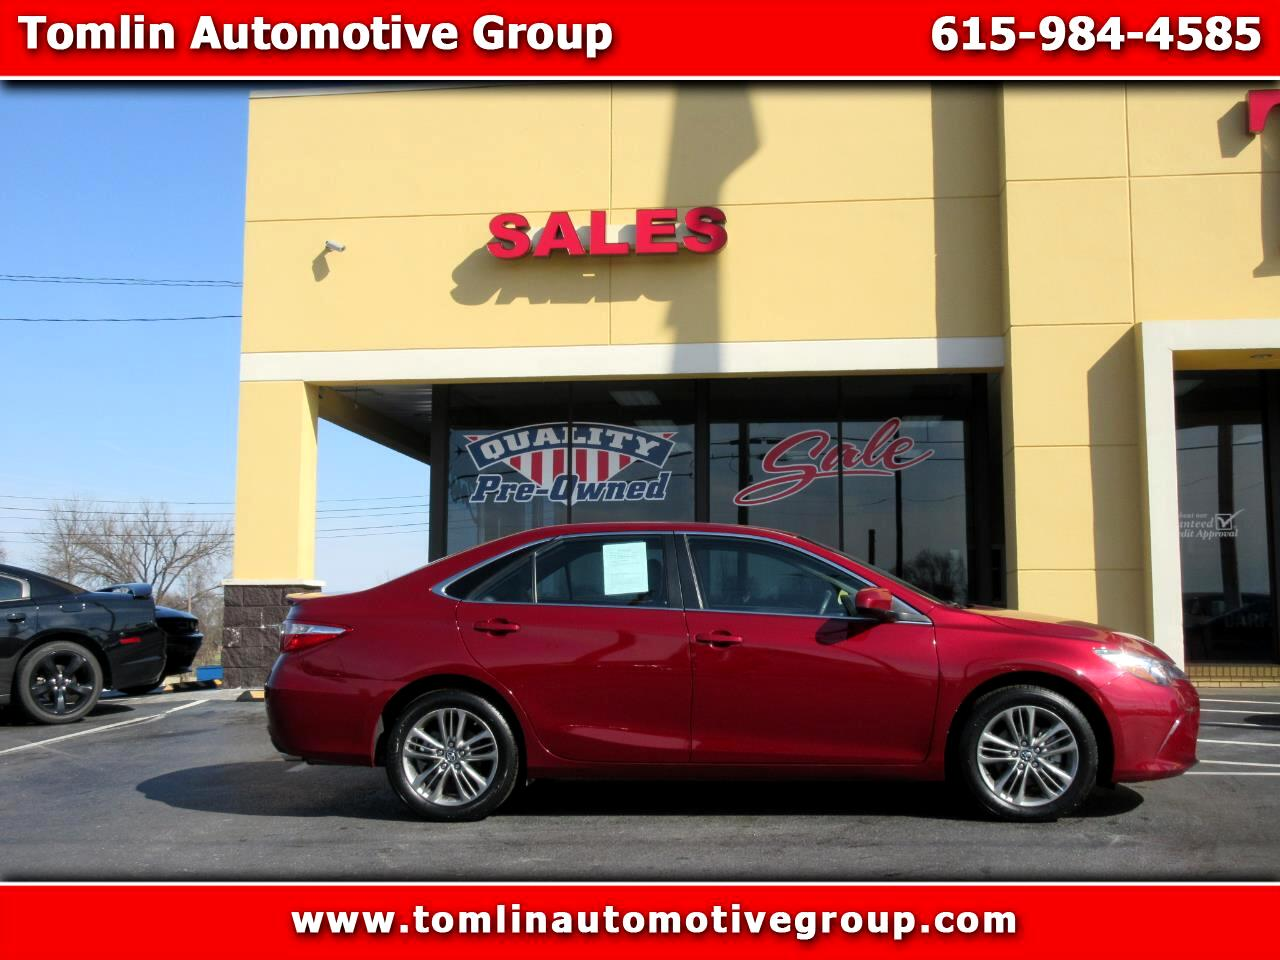 2017 Toyota Camry 2014.5 4dr Sdn I4 Auto SE Sport (Natl)